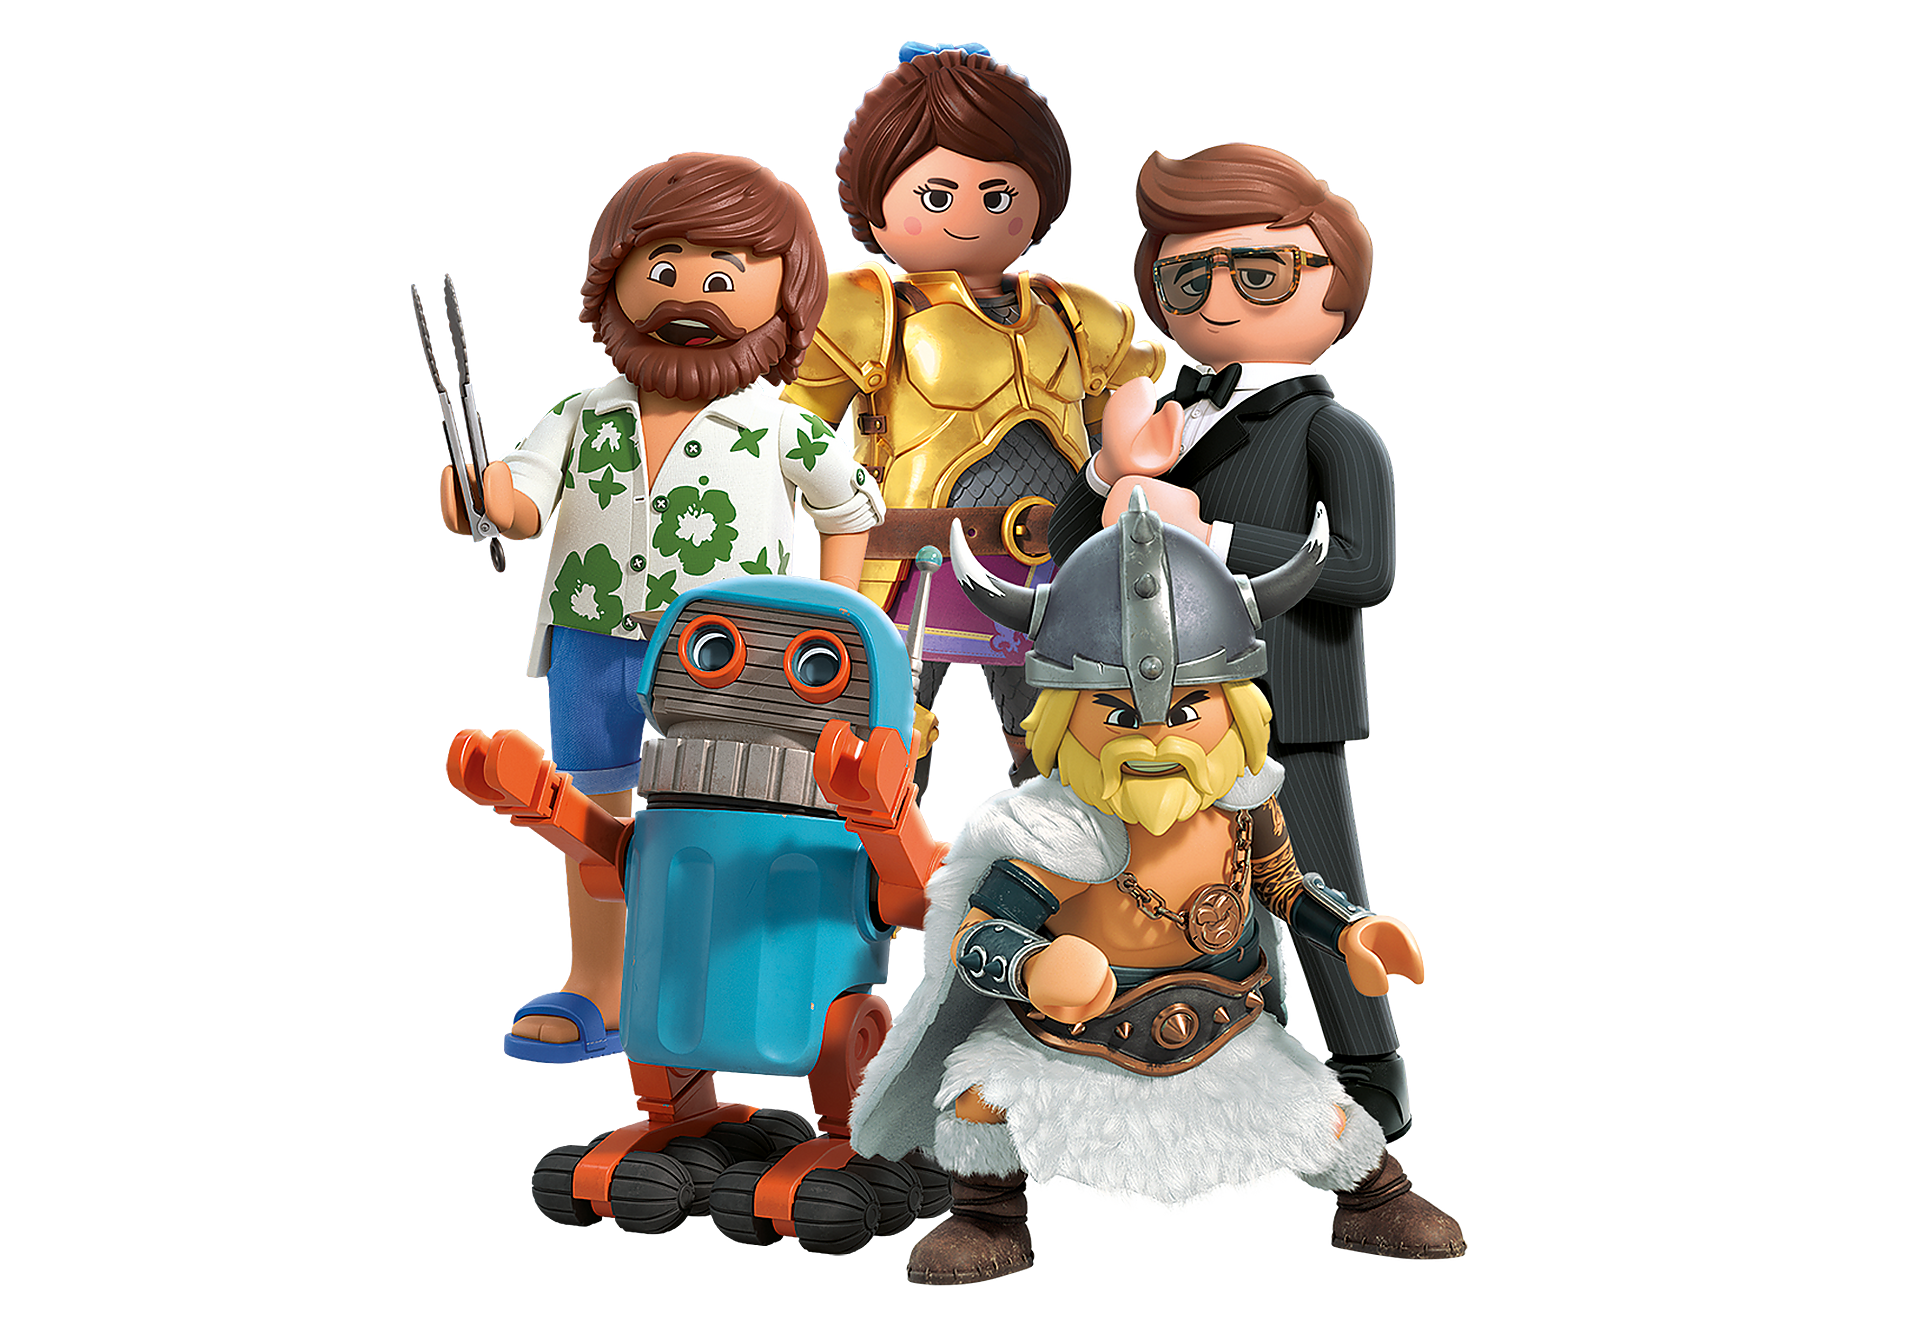 70069 PLAYMOBIL: THE MOVIE Figures (Series 1) zoom image1